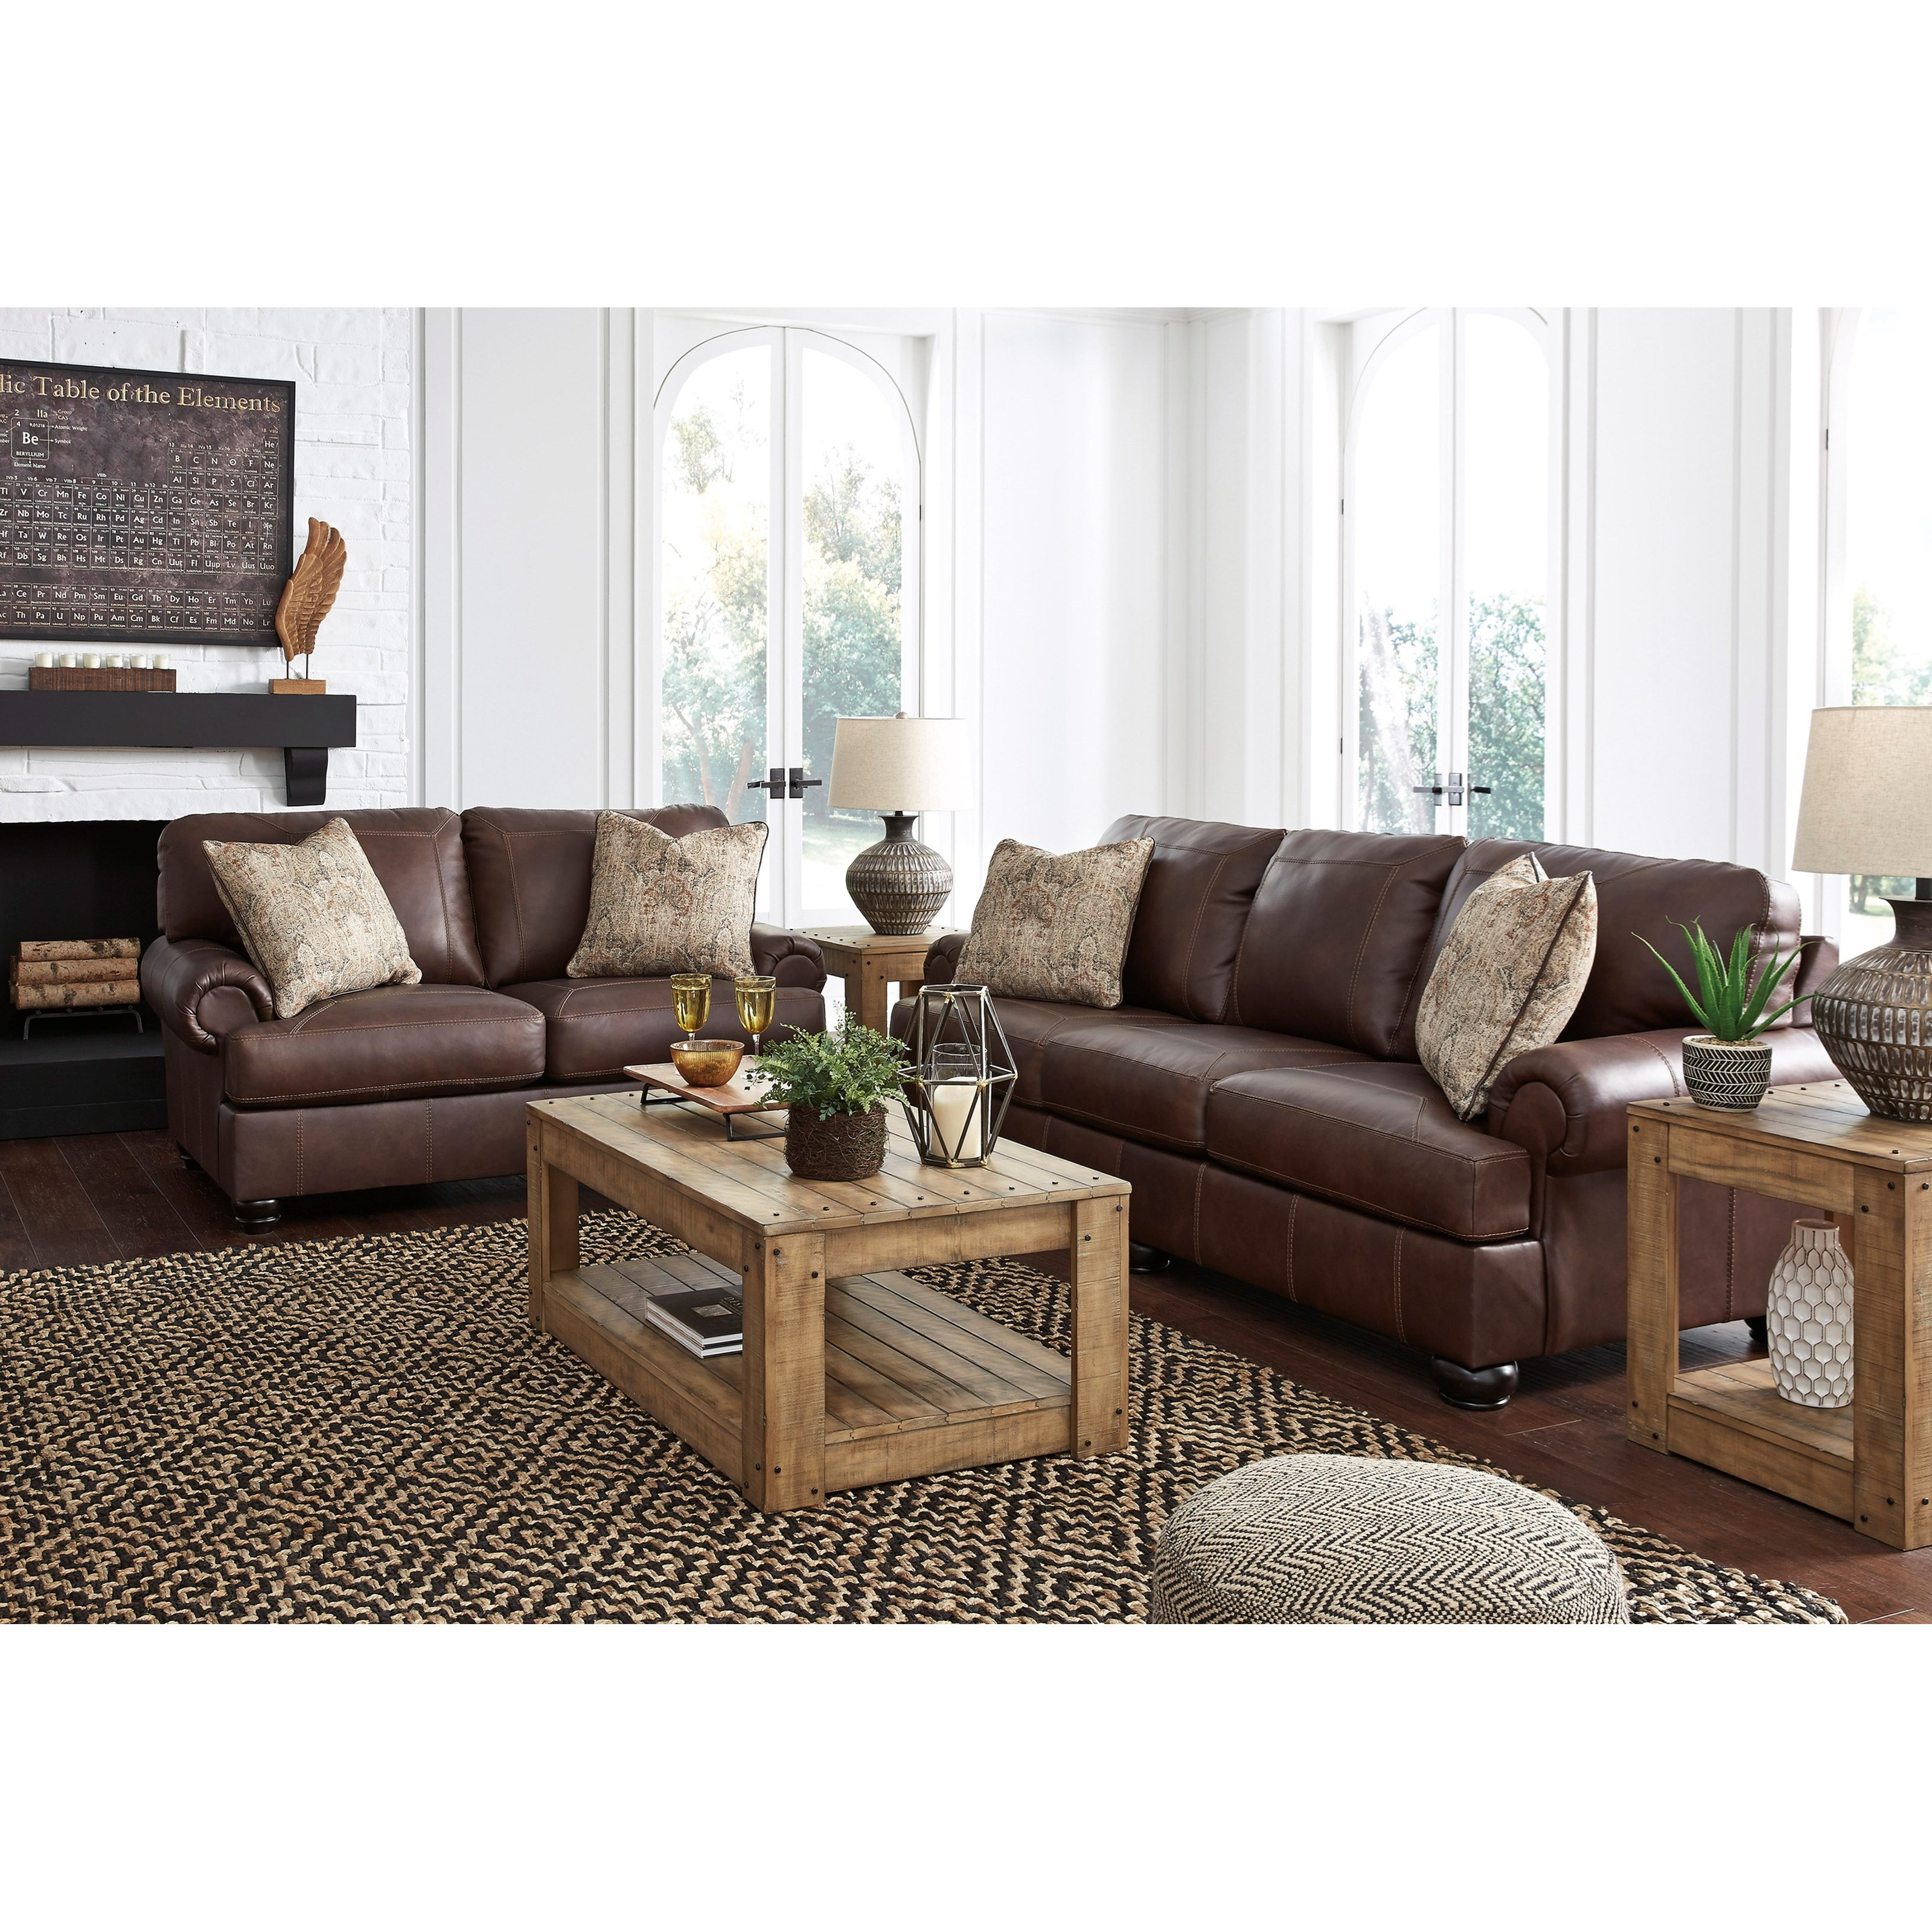 Bearmerton Living Room Group by Ashley (Signature Design) at Johnny Janosik